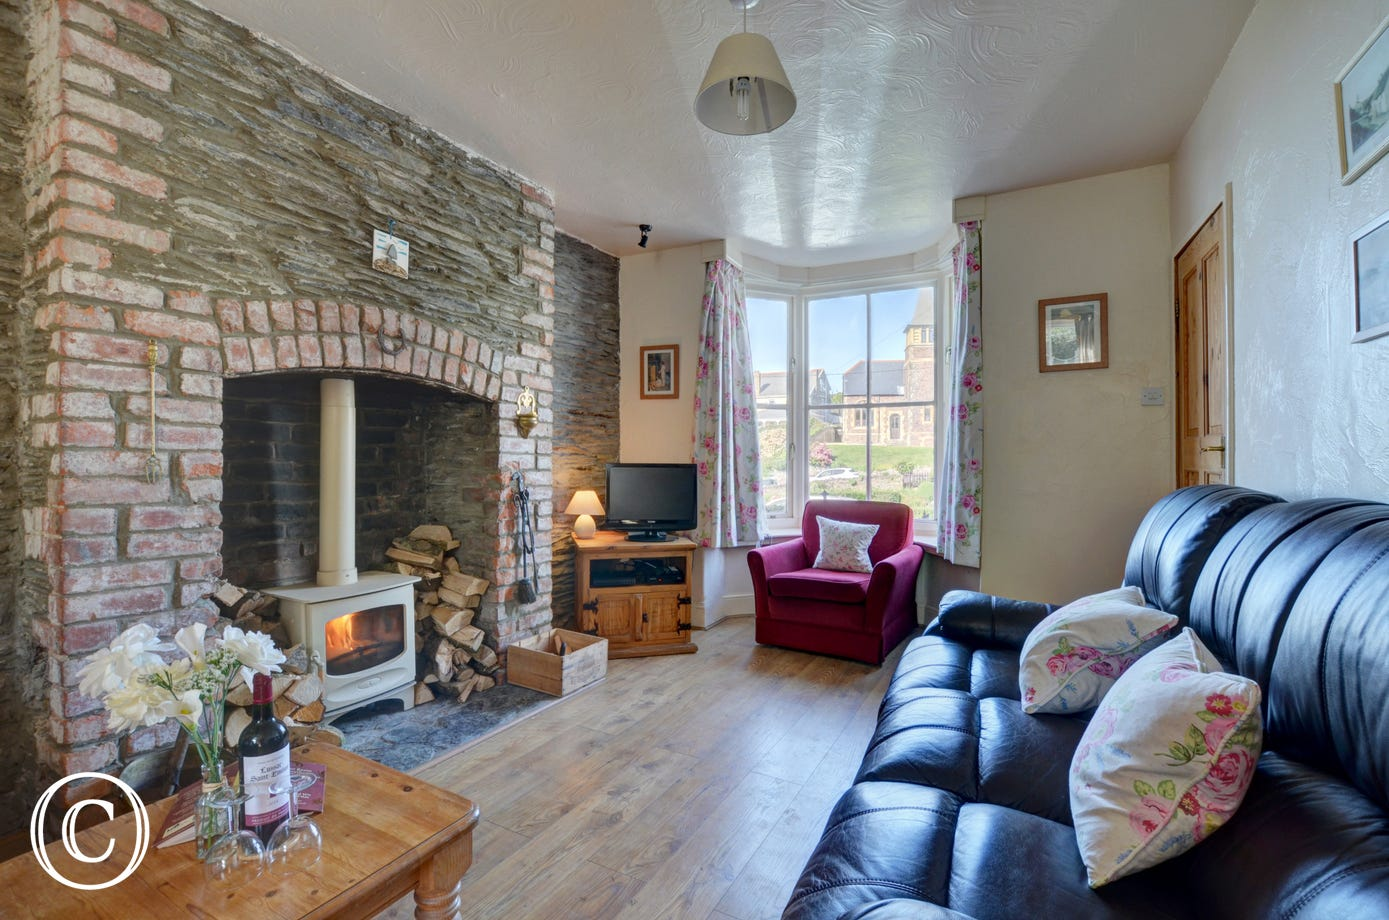 The spacious living/dining room has laminate flooring and a wood burning stove